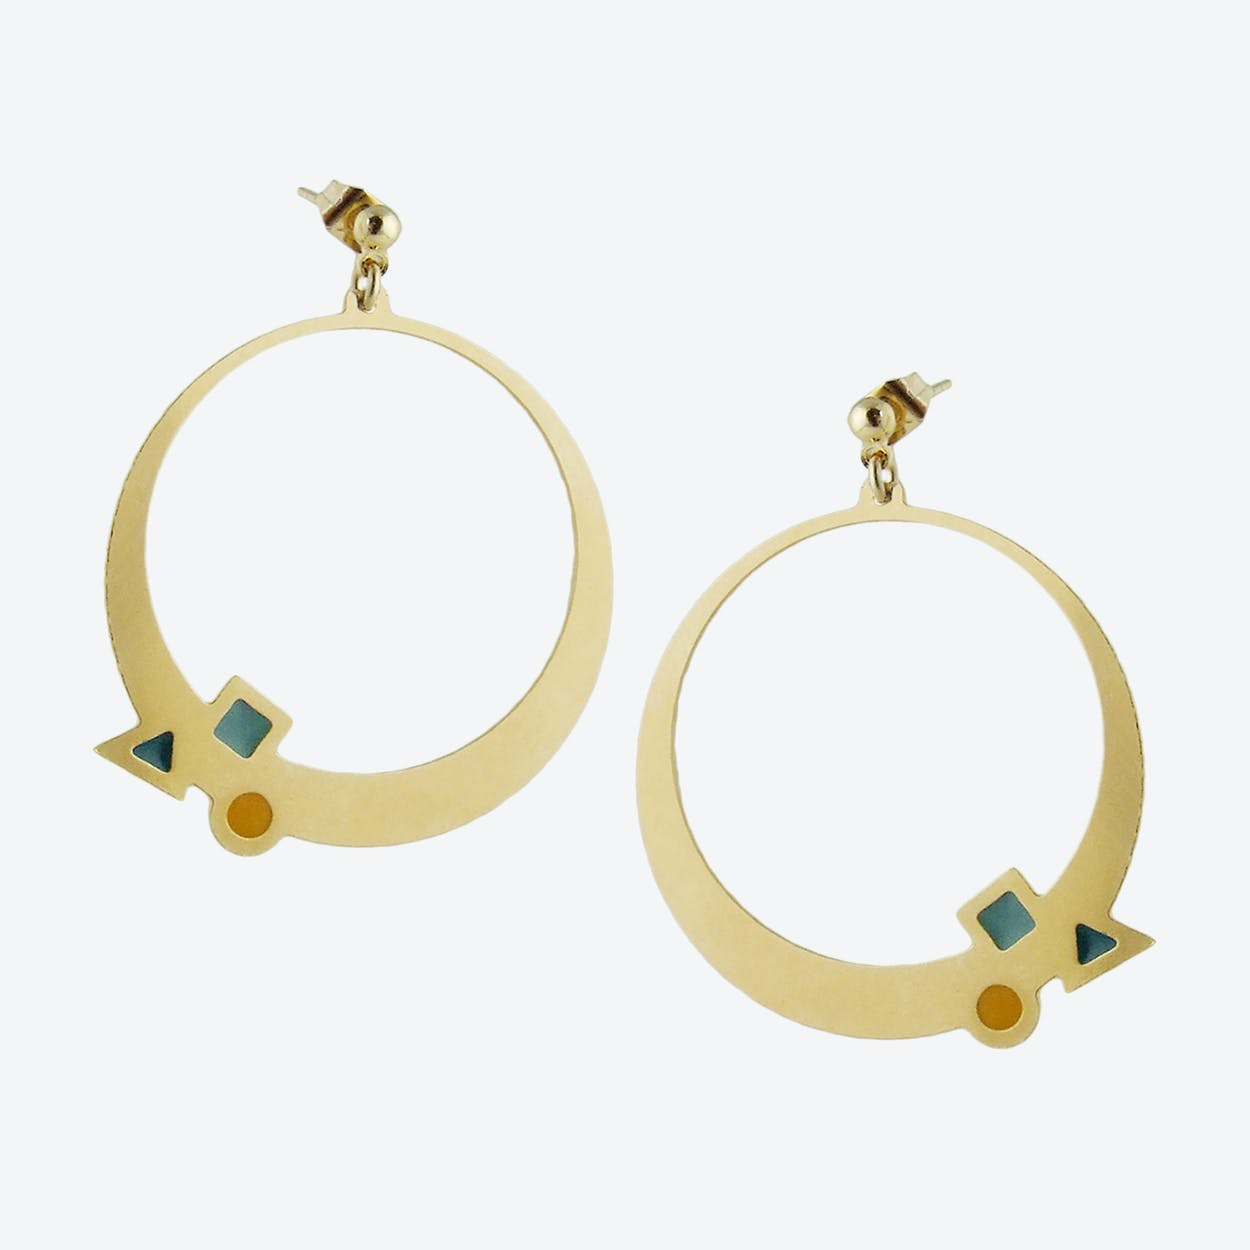 Geometric Gold Hoop Earrings in Emerald, Duck Egg, and Mustard